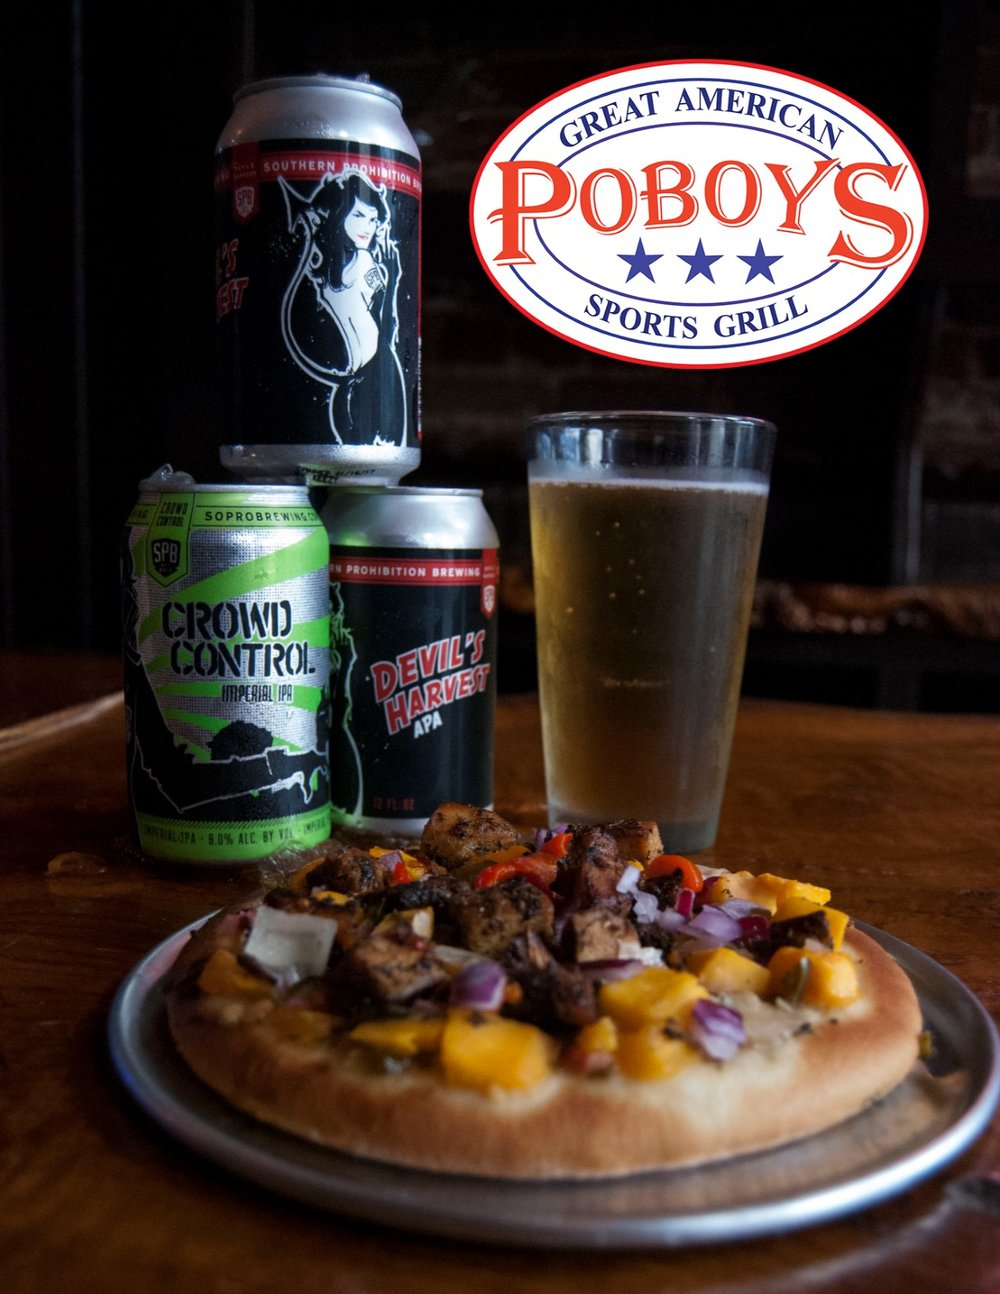 Caribbean Mango Jerk Chicken Pizza with Southern Prohibition Crowd Control IPA and Devil's Harvest APA!